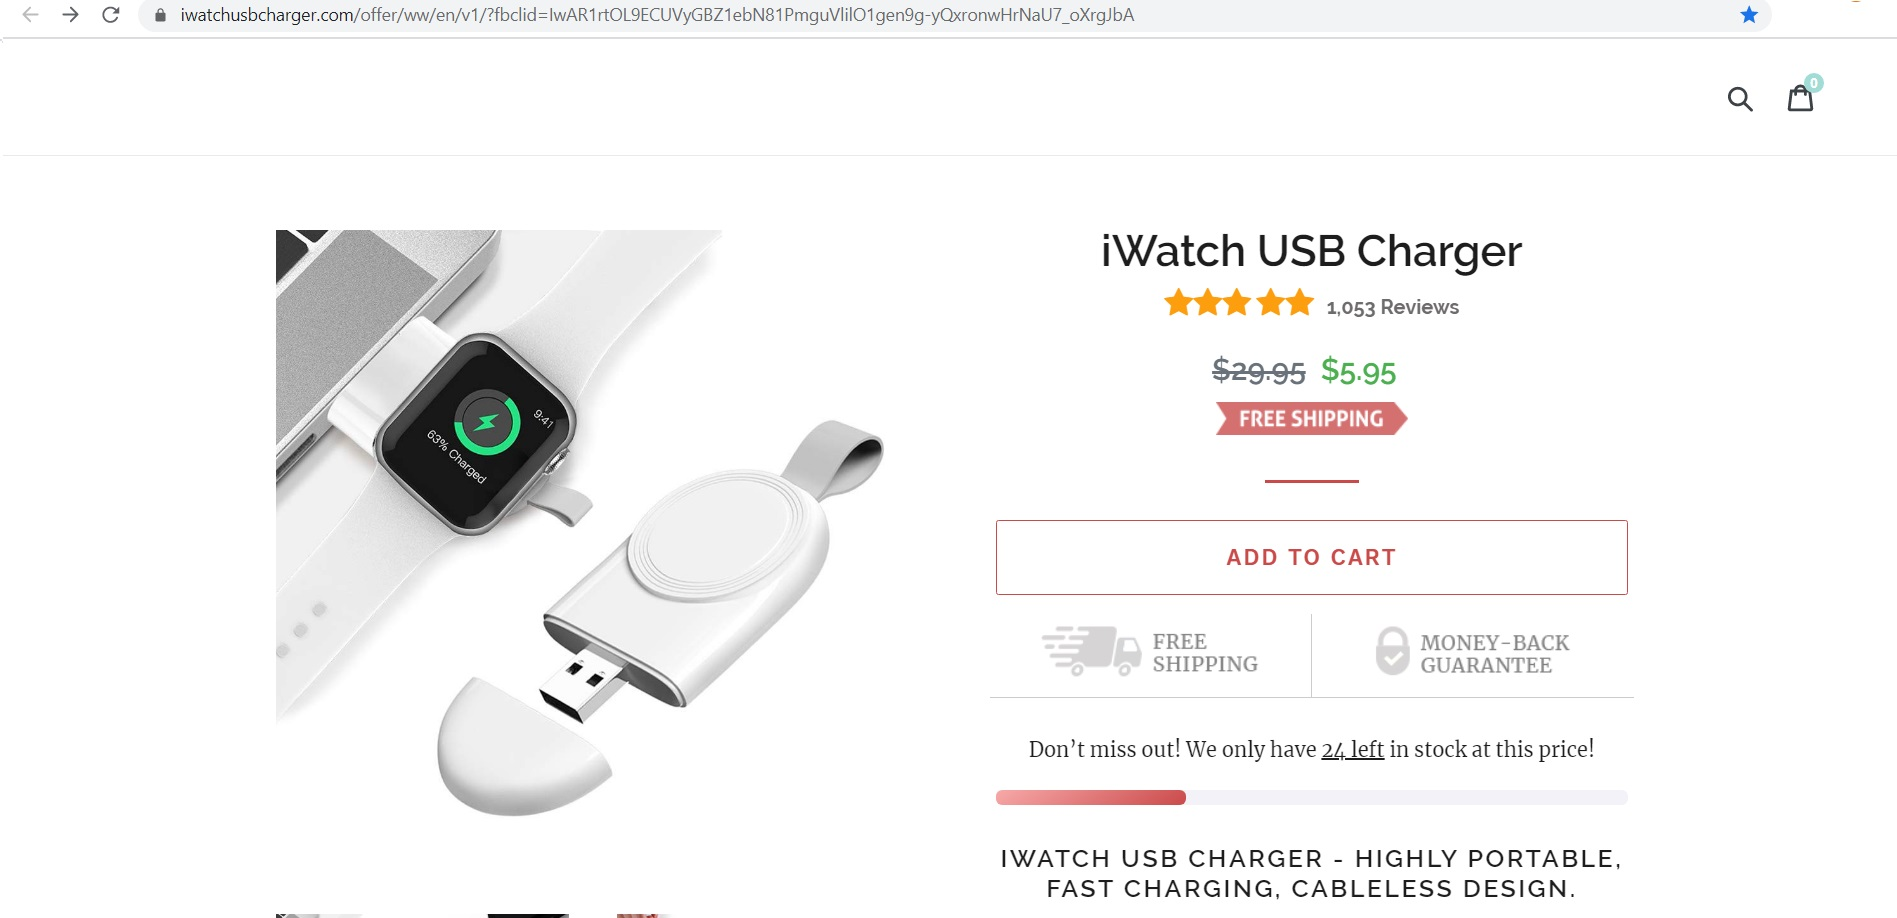 www.iwatchusbcharger.com